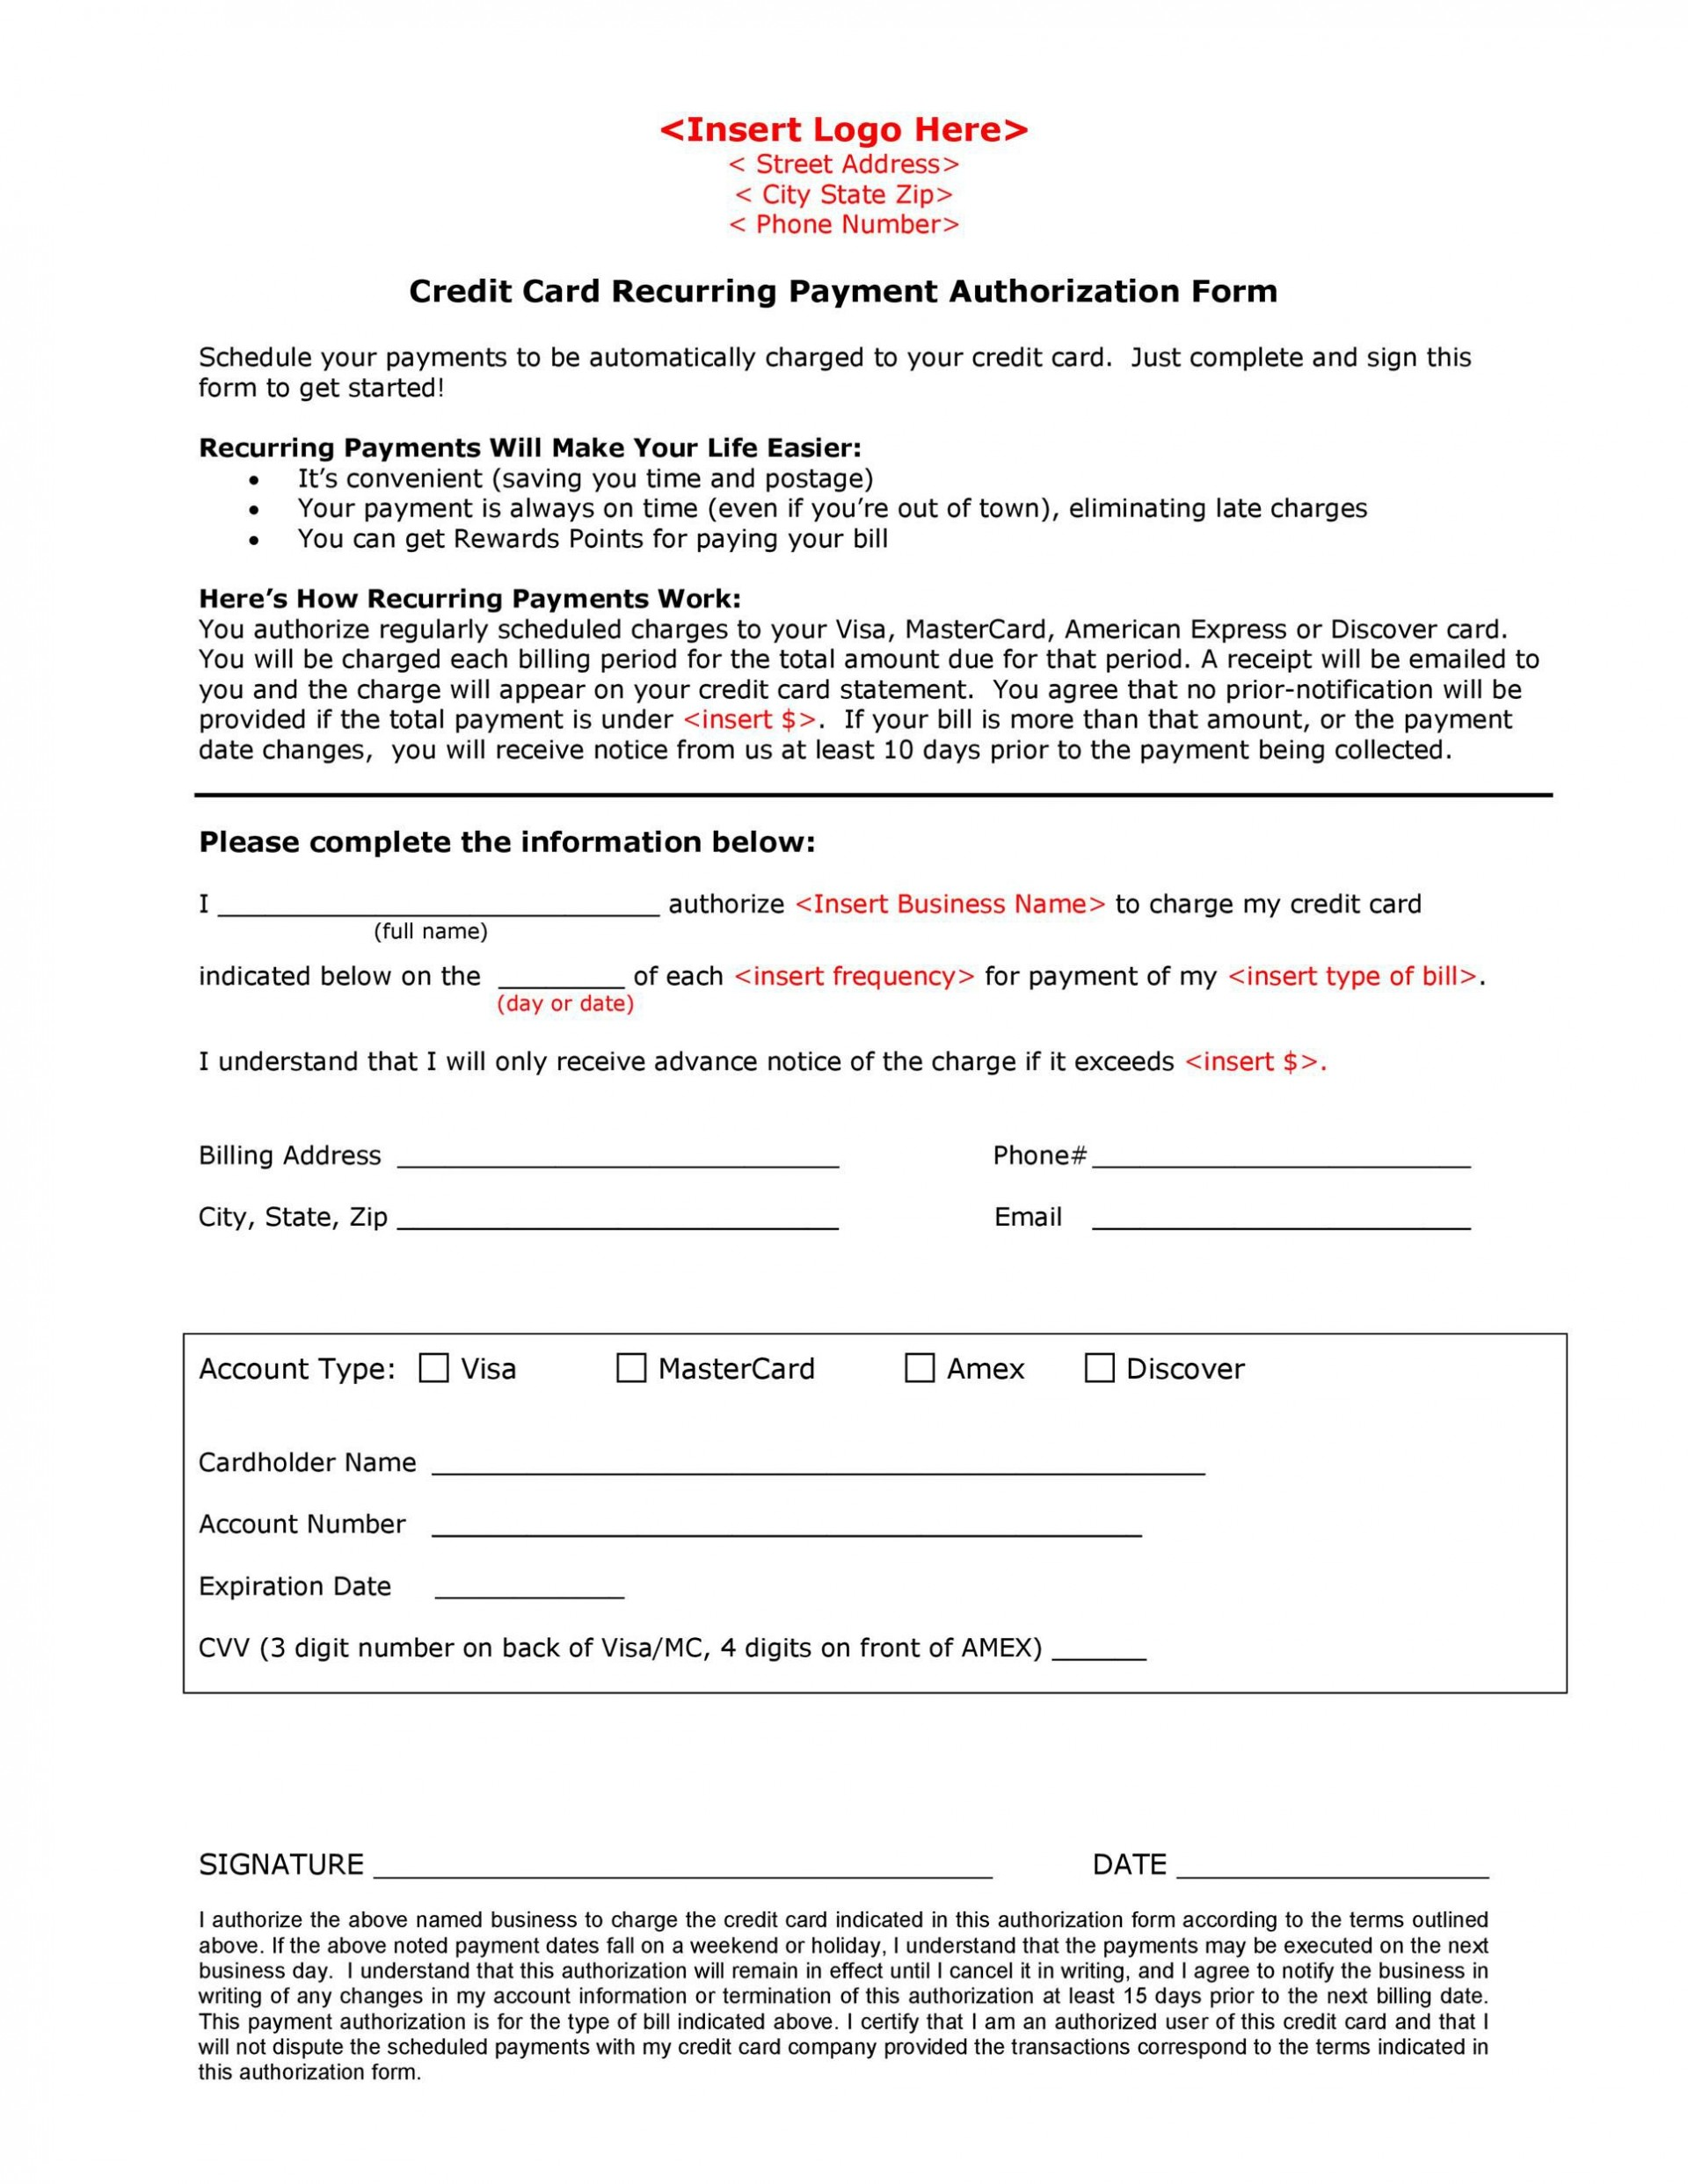 005 Striking One Time Credit Card Payment Authorization Form Template High Resolution 1920